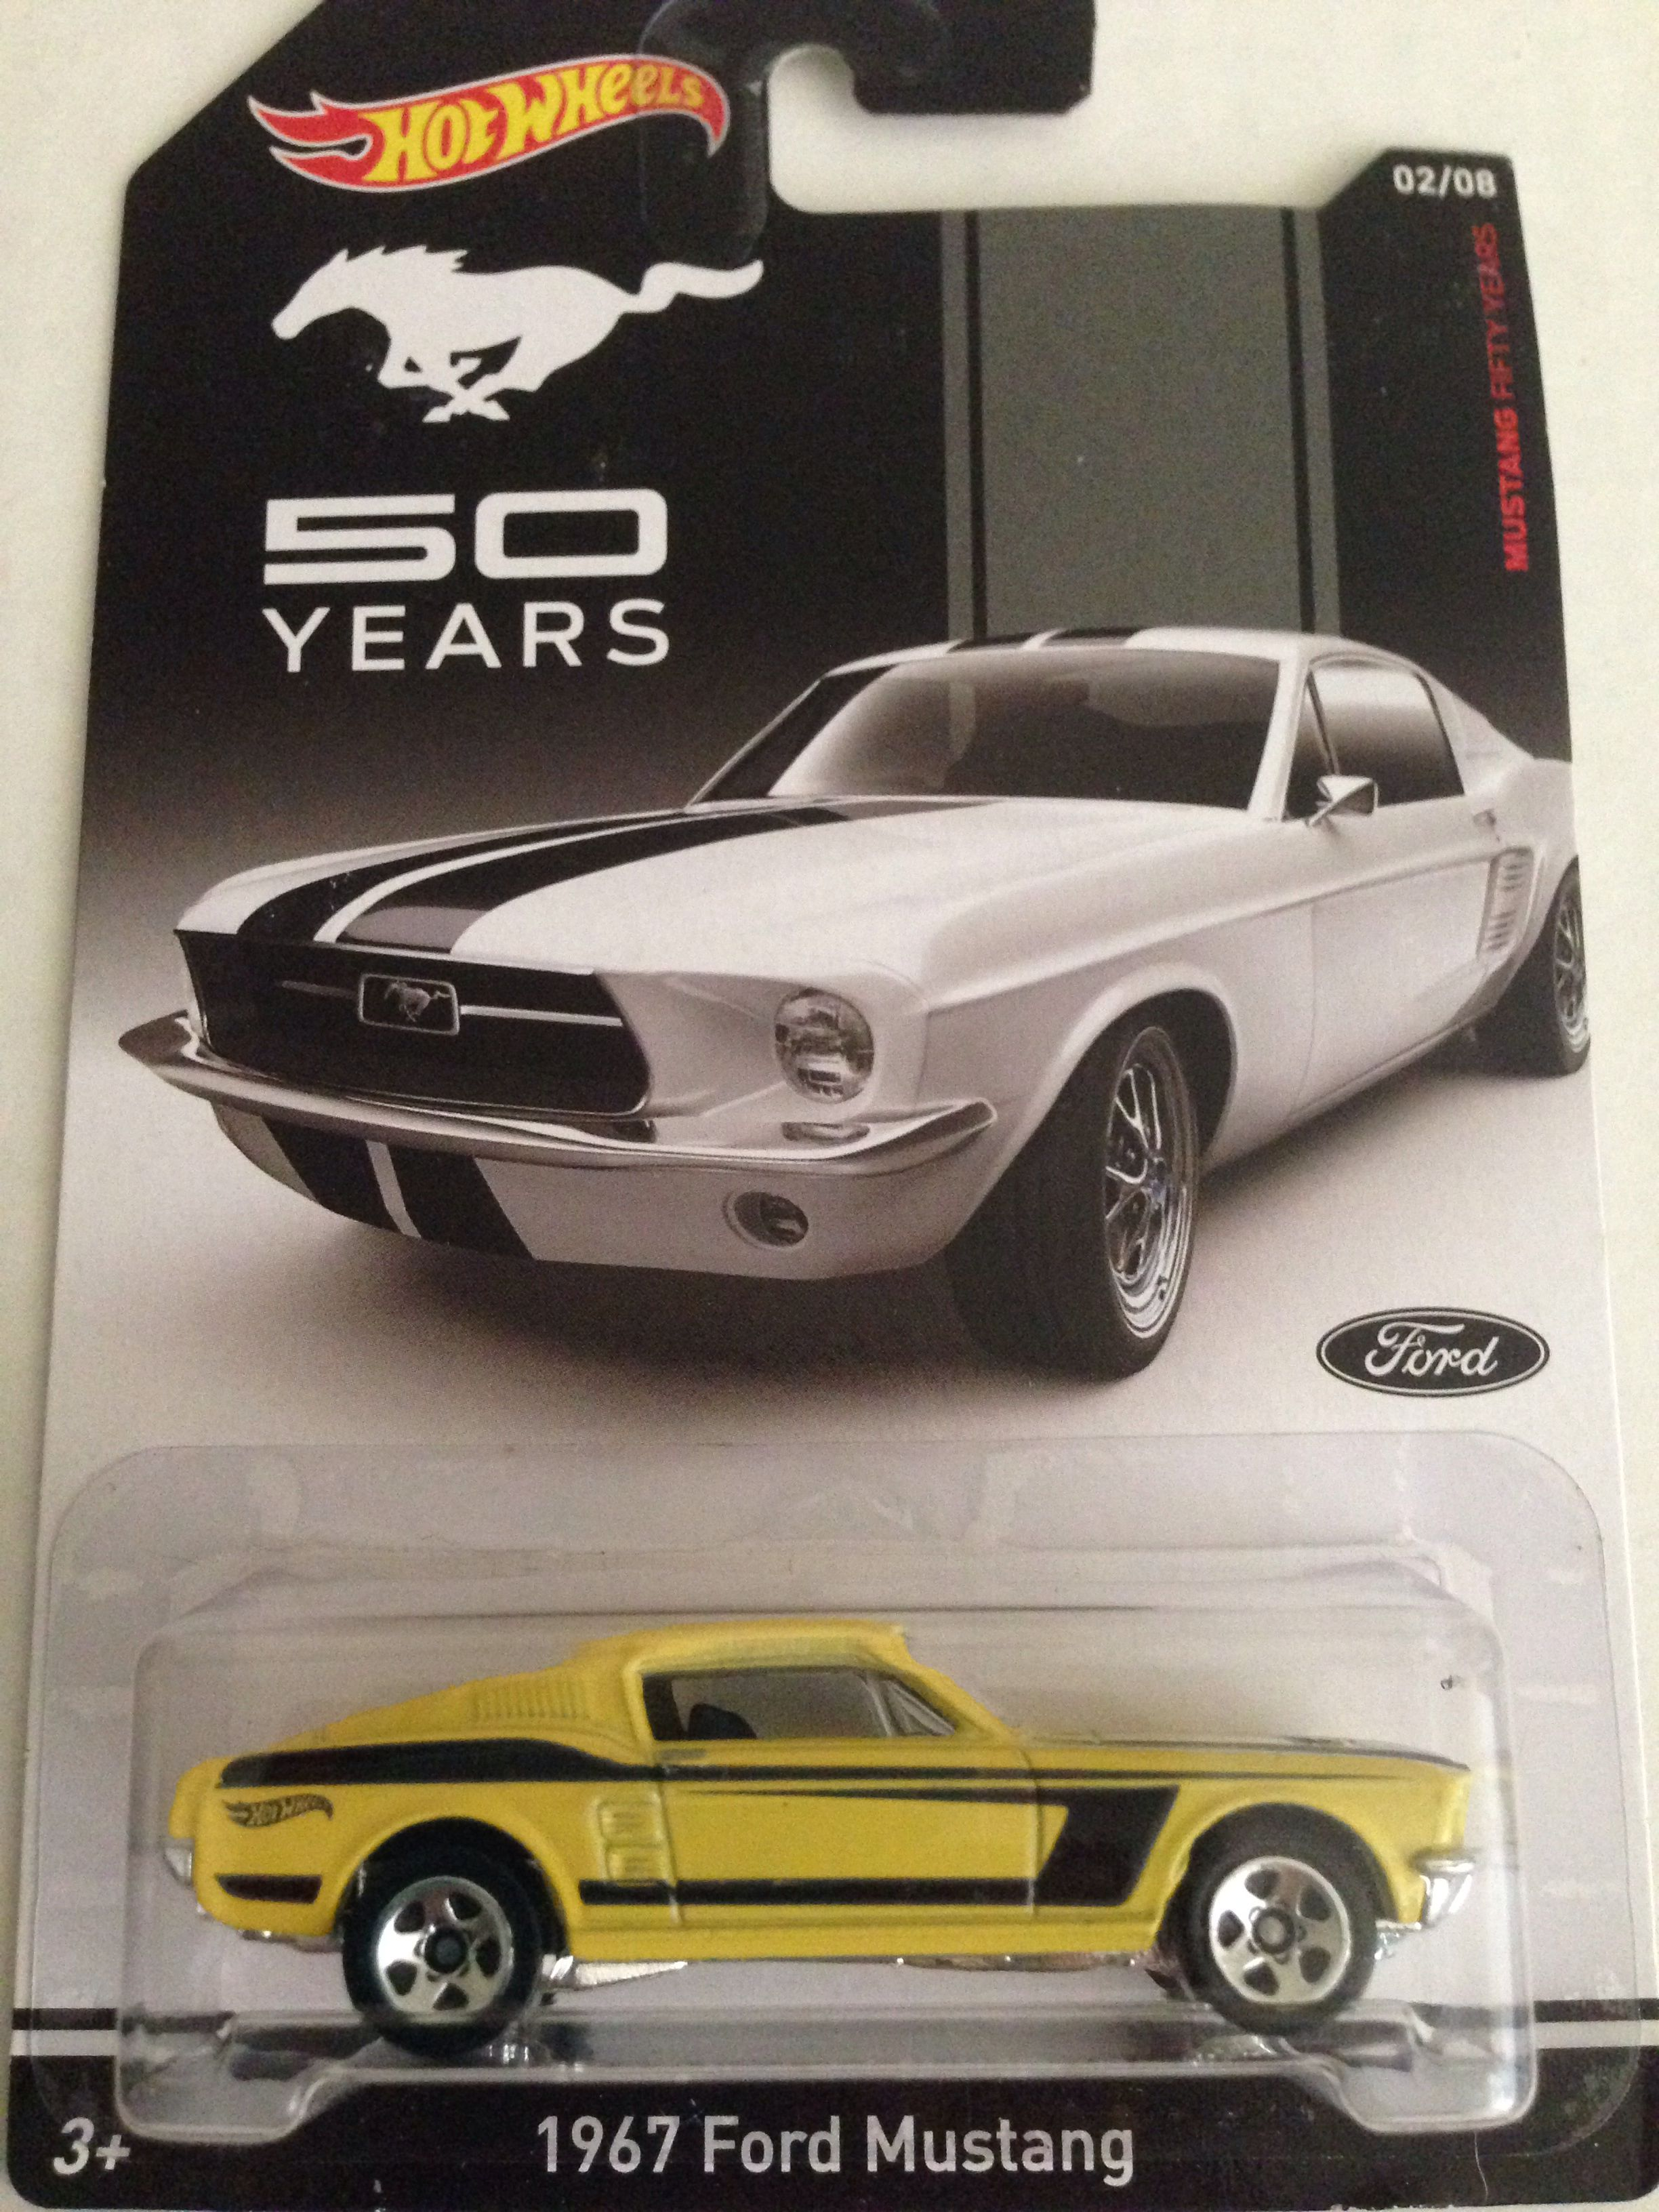 1967 ford mustang hot wheels 2014 mustang 50 years 2 8